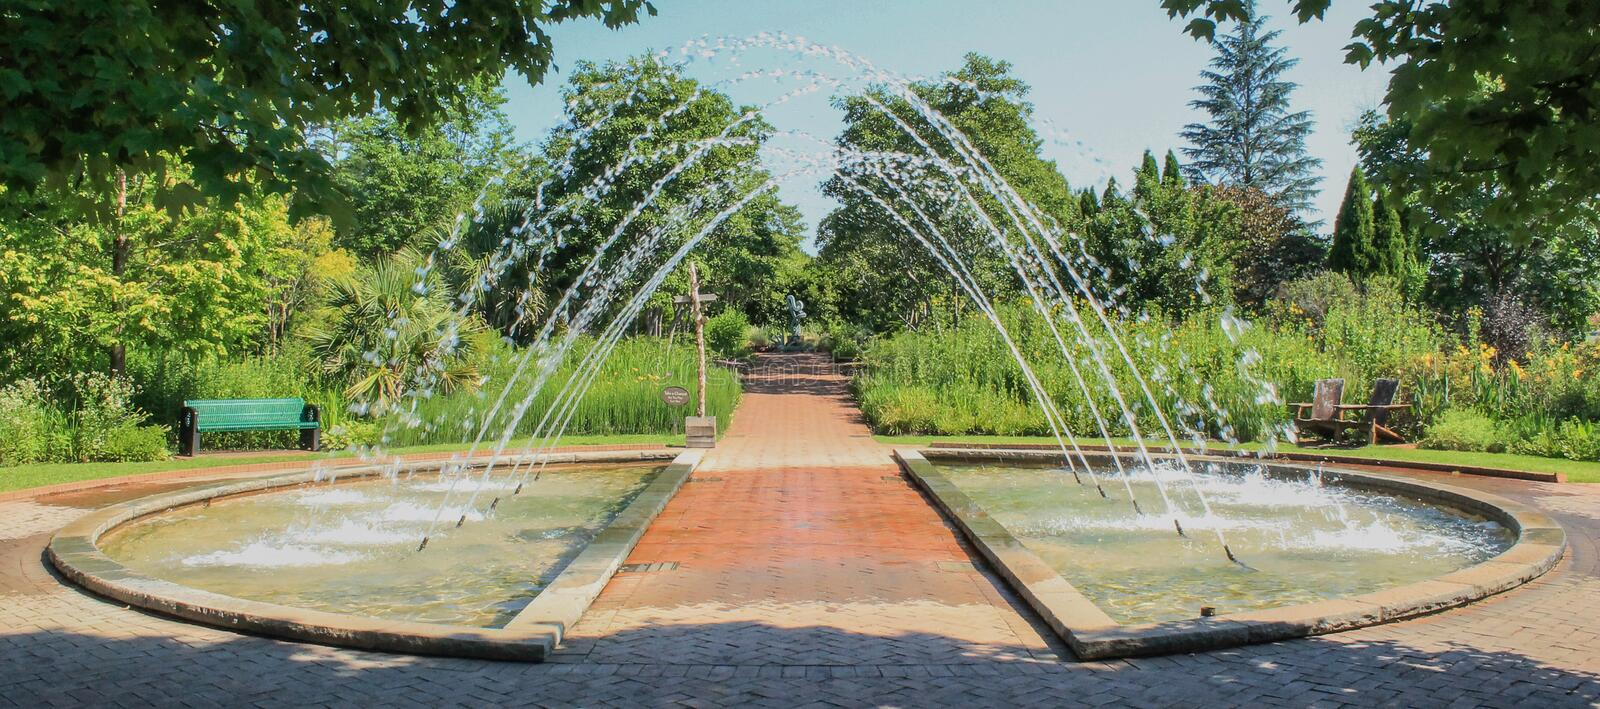 Daniel Stowe Arch Fountain. Arched water fountain at the Daniel Stowe Botanical Garden in Belmont NC stock photo